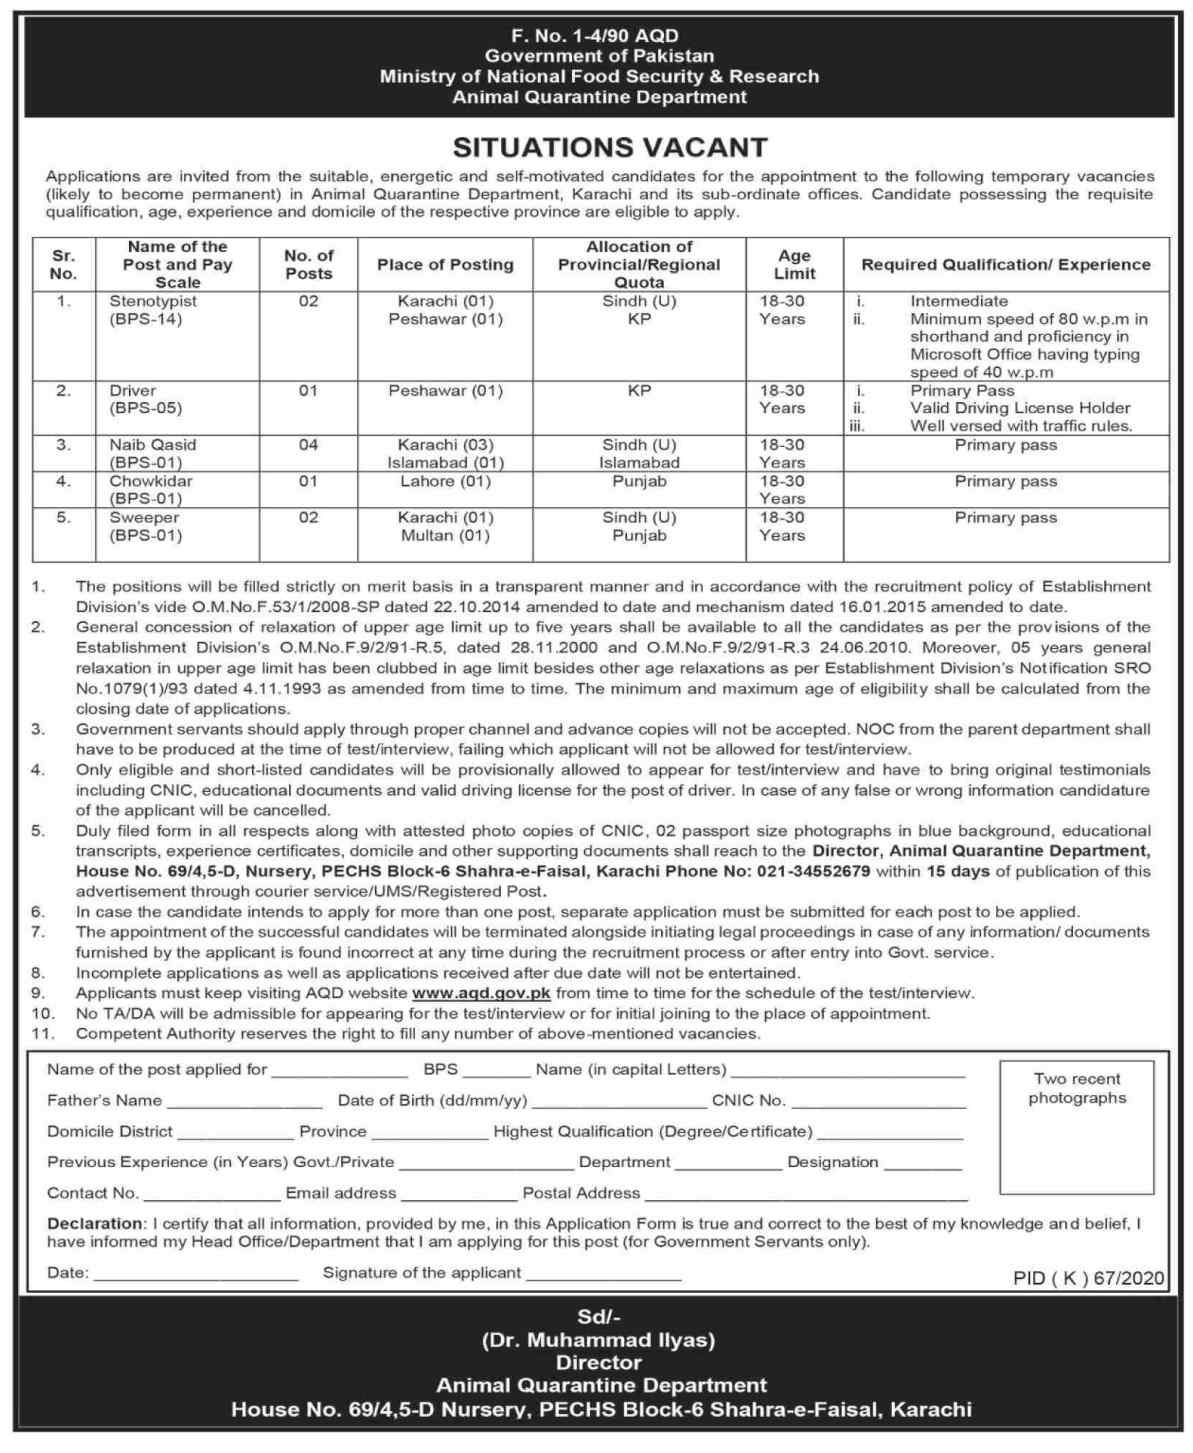 Ministry of National Food Security & Research MNFSR Karachi 2020 for Stenotypist, Driver, LTV Driver & more